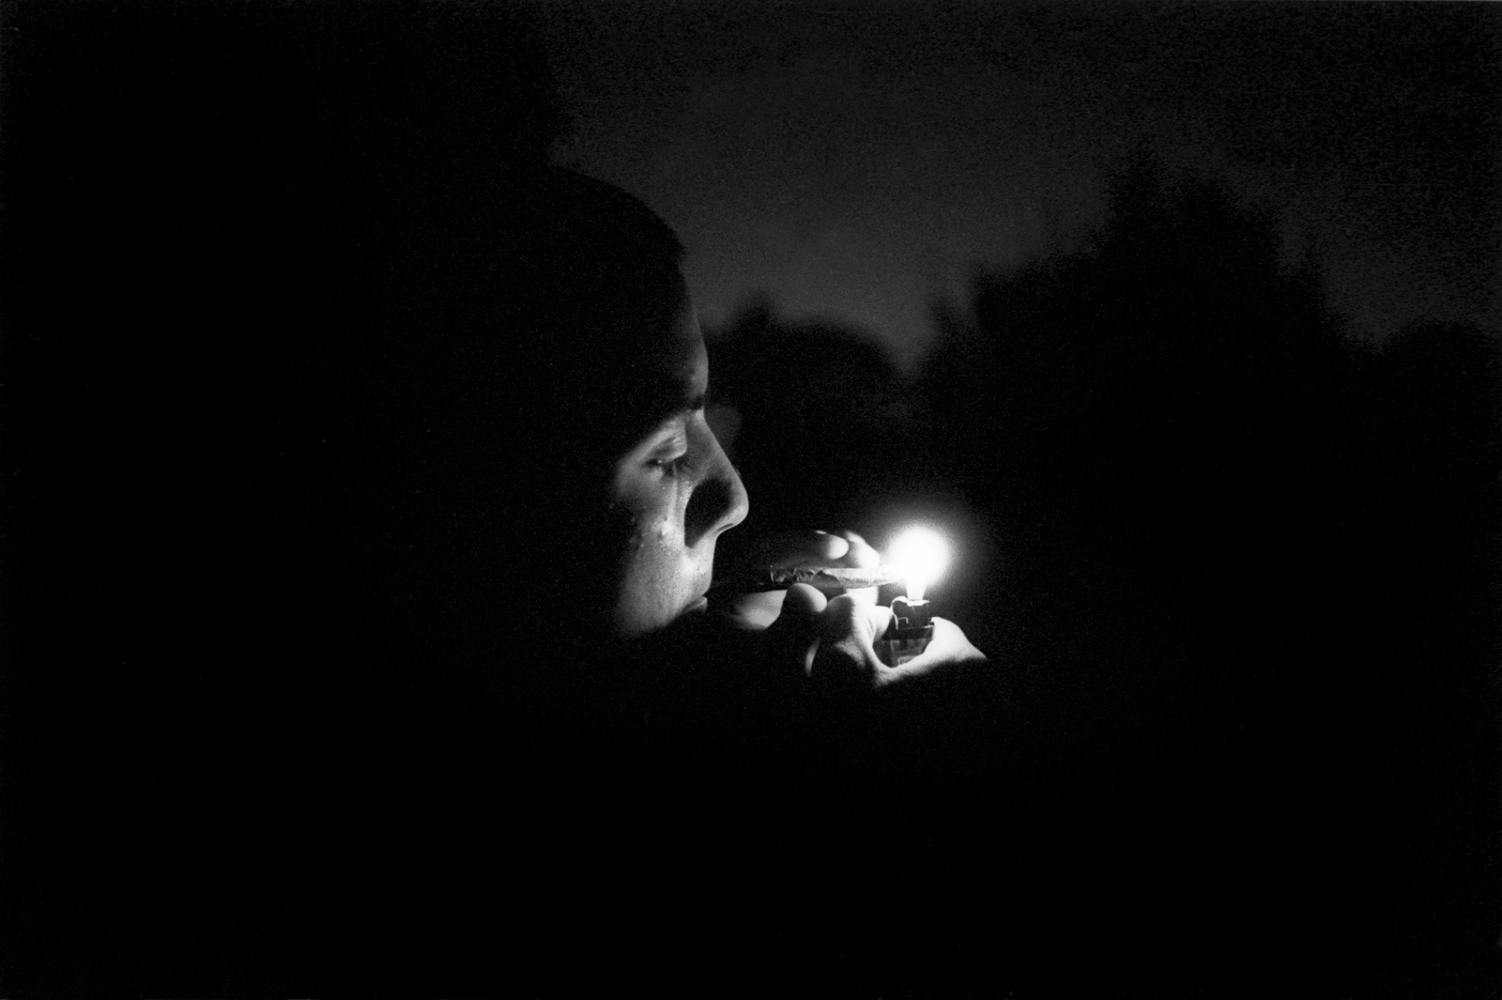 Michael lights up a joint on the roof of his families home.